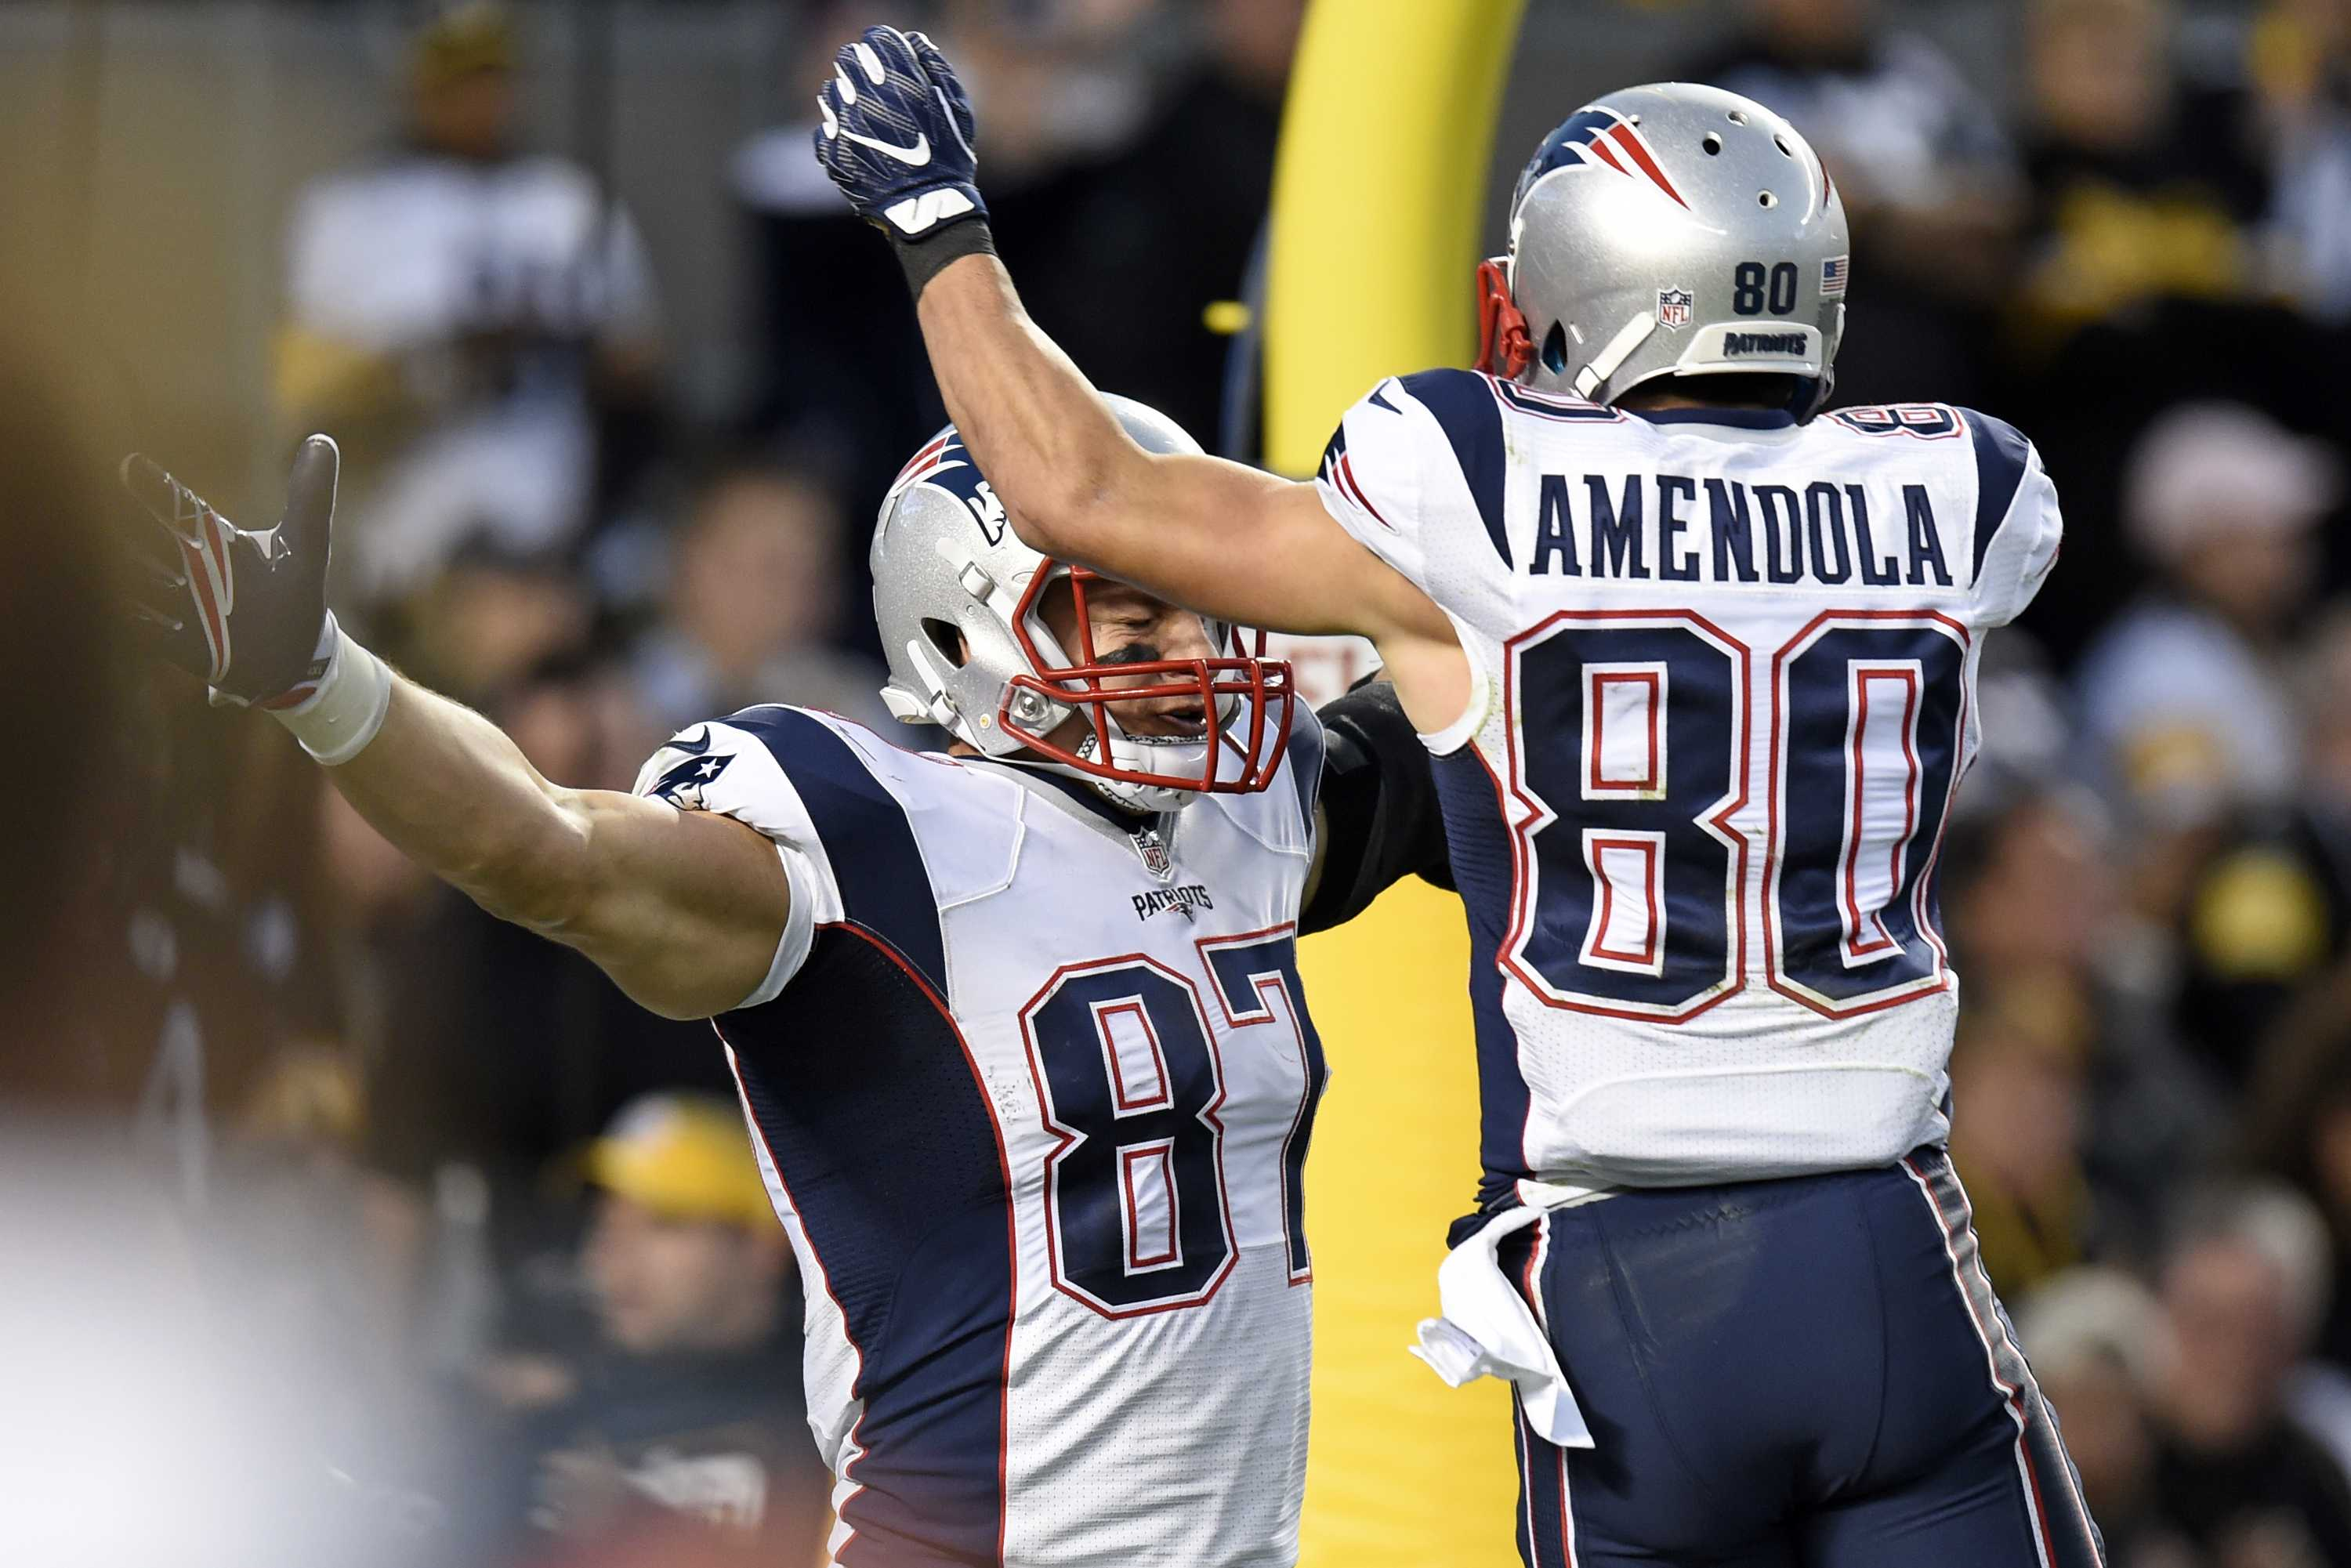 Texas Tech awards scholarship to player with help of Patriots' Rob Gronkowski